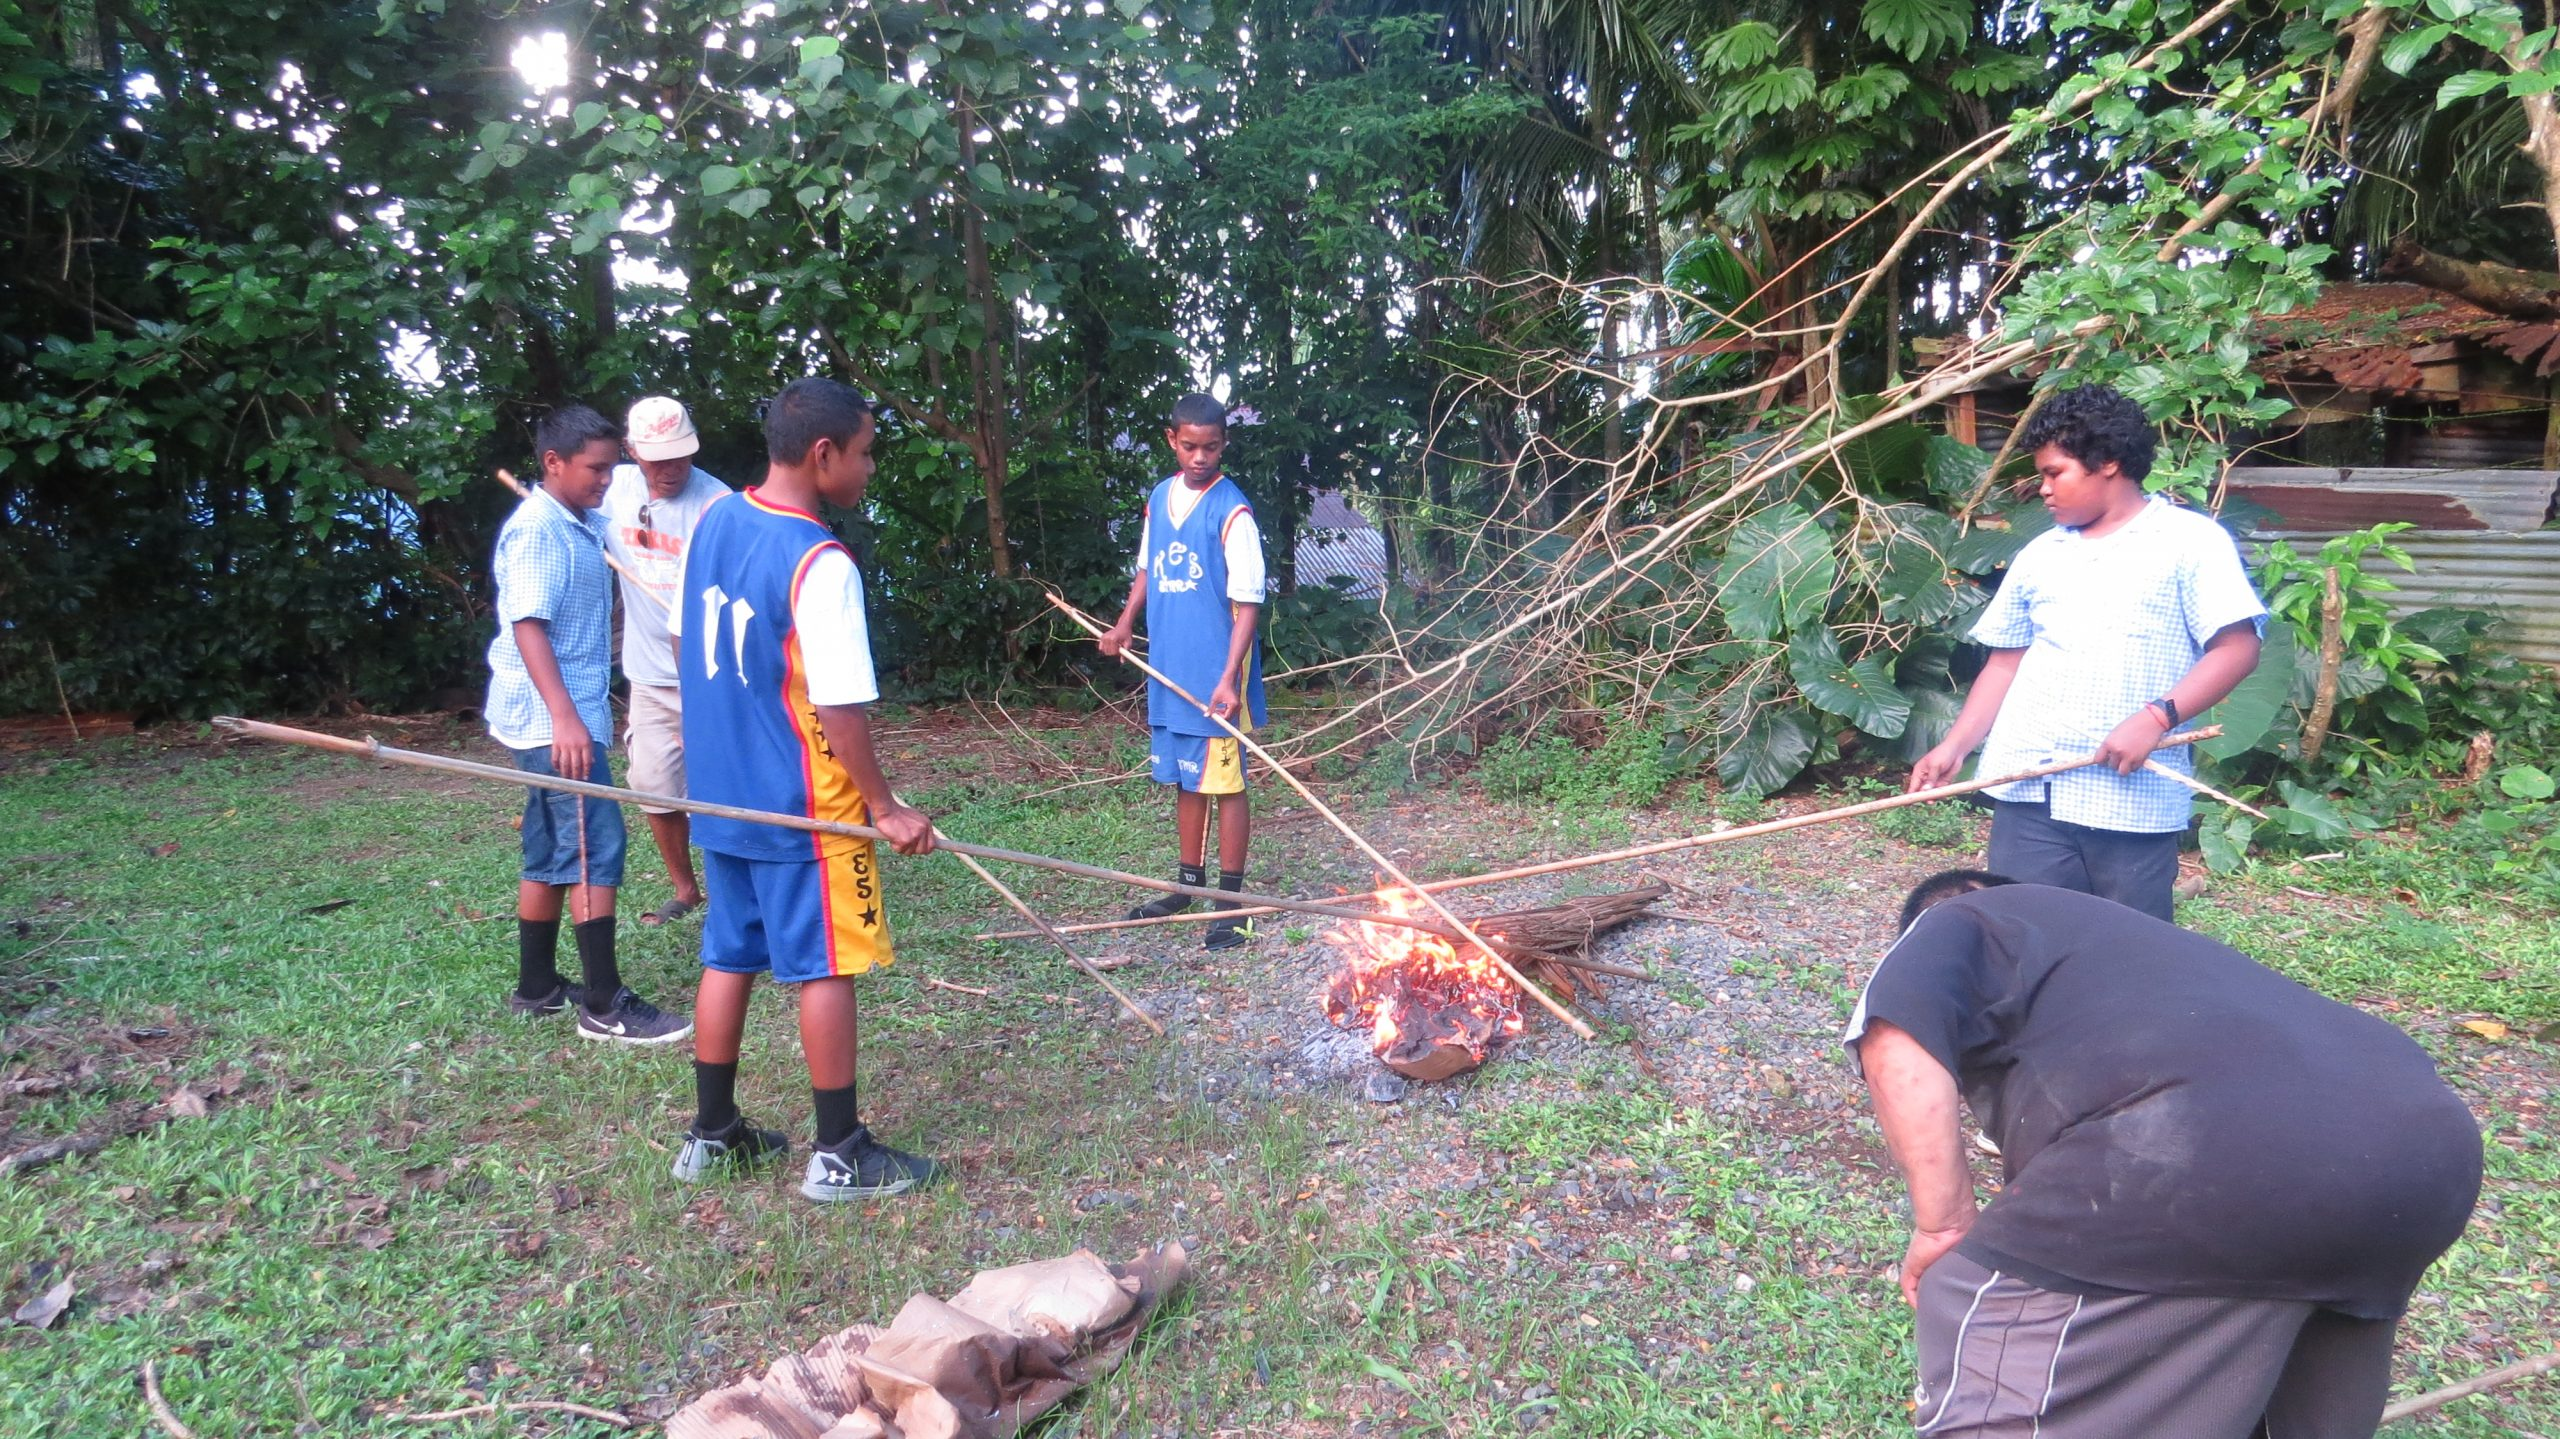 Photo of Palau residents learning how to make traditional fishing spears